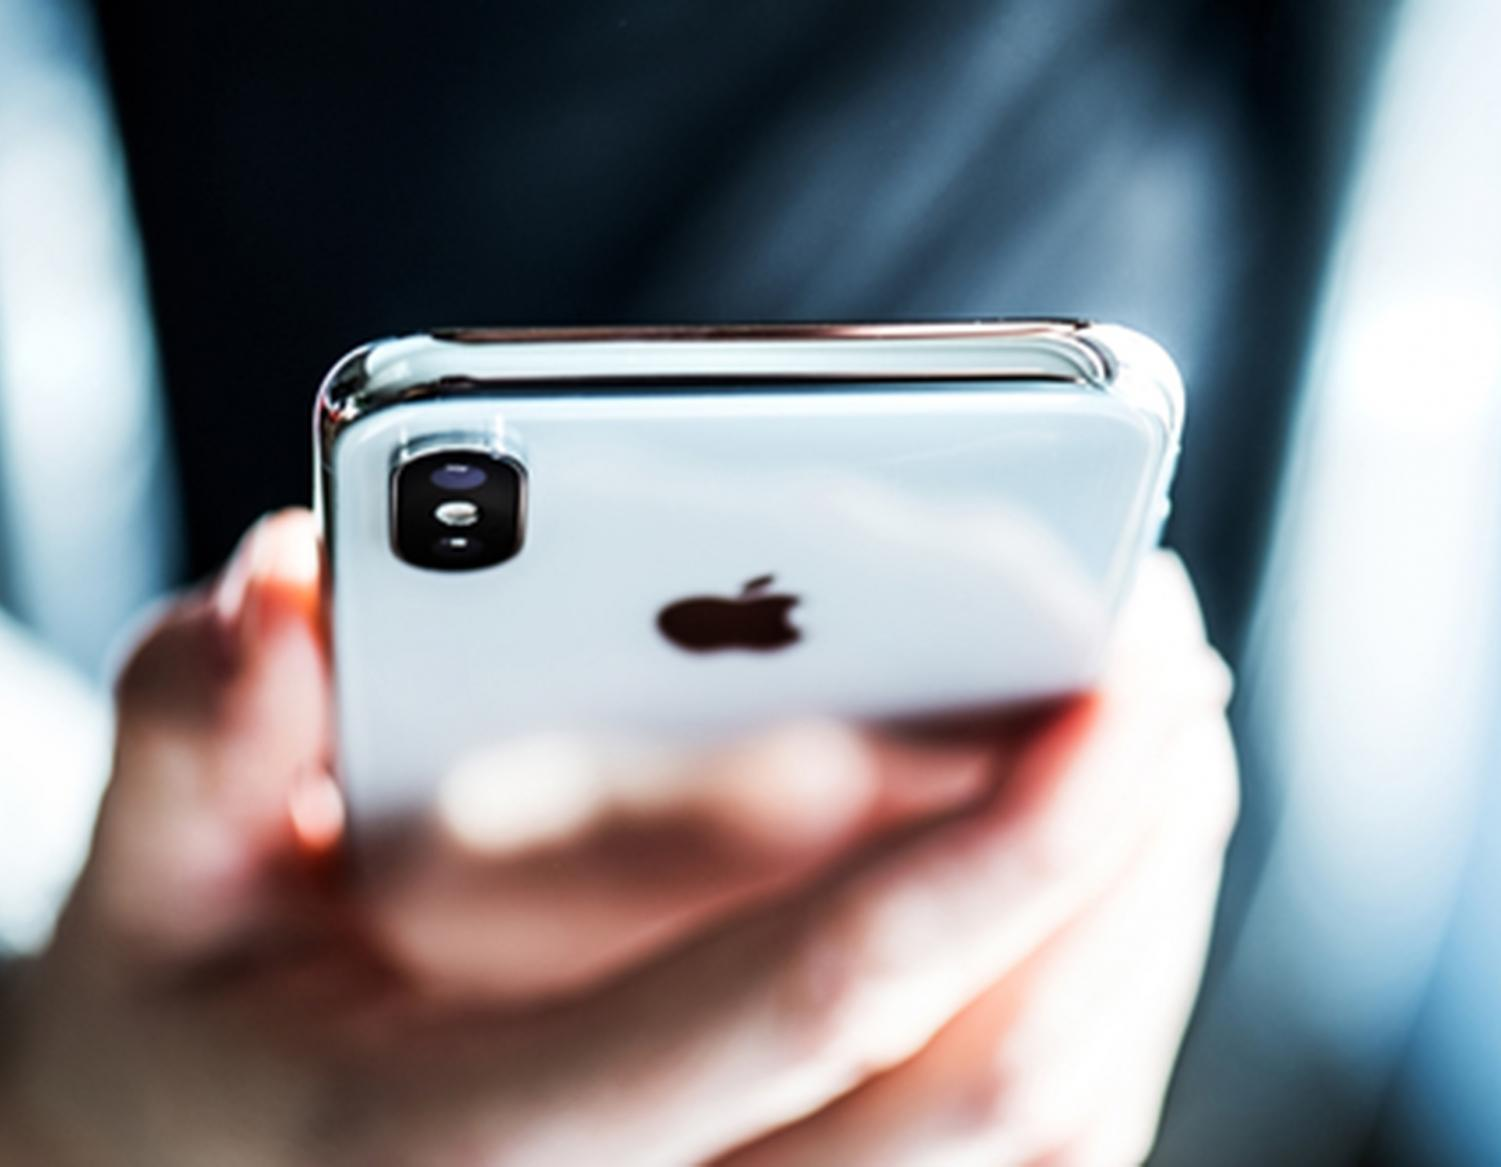 Albie Nicol pens a column urging readers to consider decreasing their smartphone usage, citing the emotional and social benefits that arises from face-to-face communication.